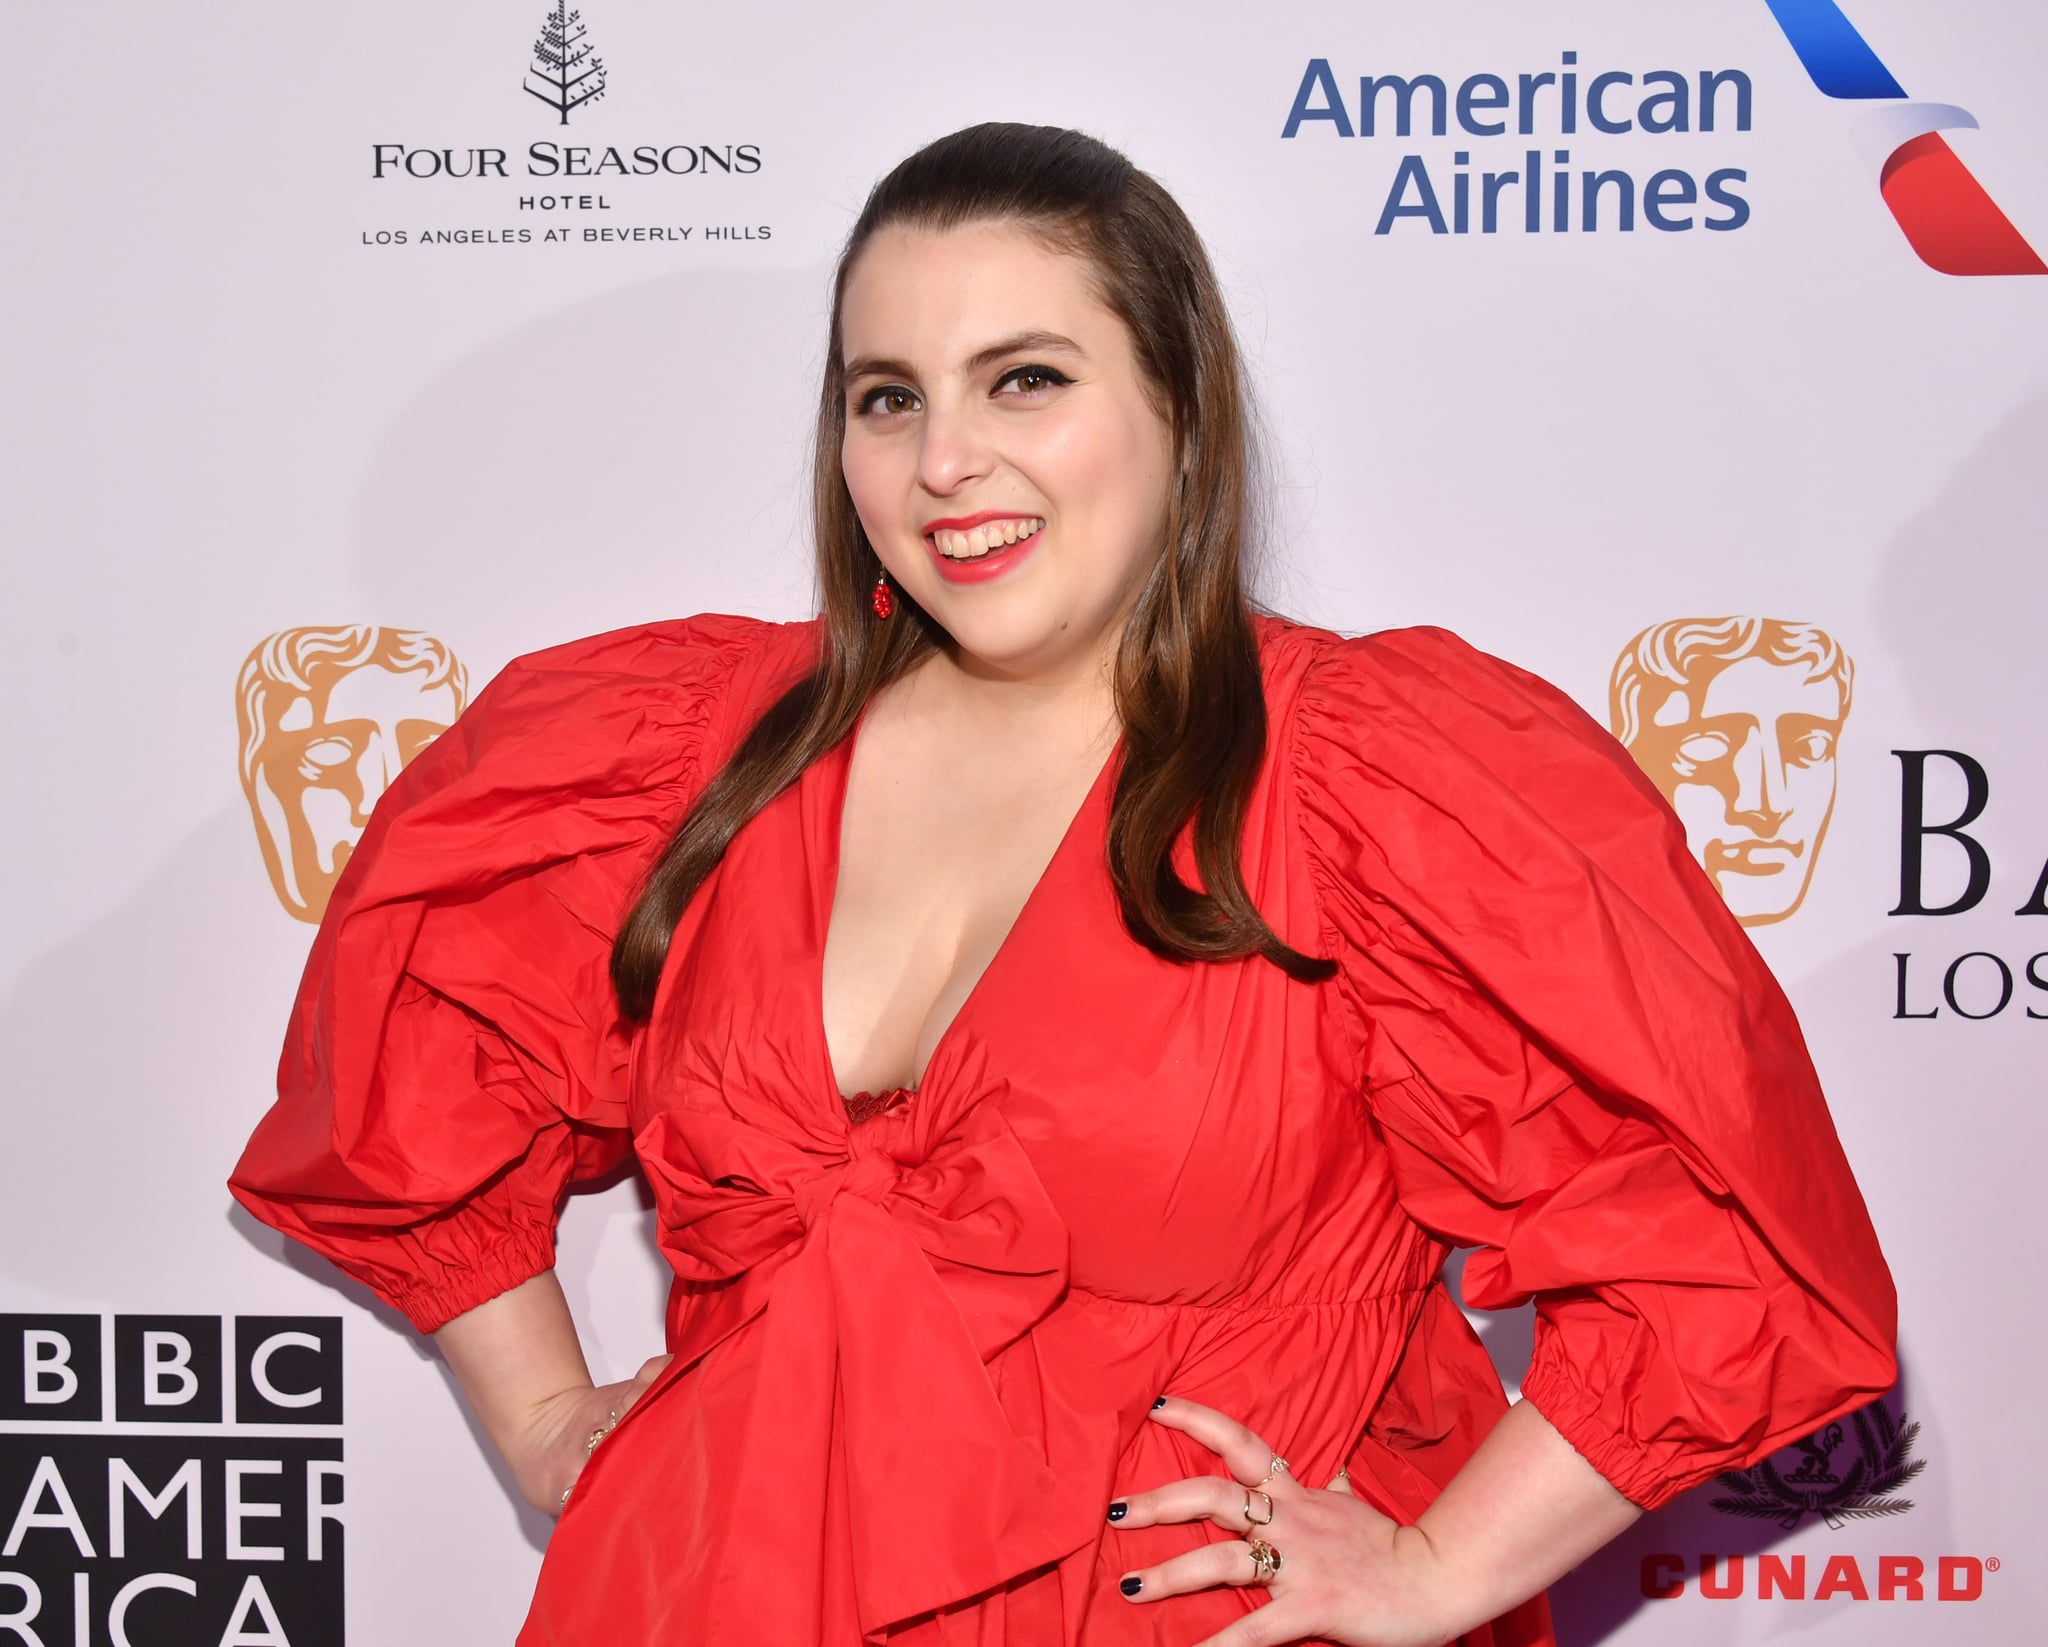 LOS ANGELES, CALIFORNIA - JANUARY 04: Beanie Feldstein attends The BAFTA Los Angeles Tea Party at Four Seasons Hotel Los Angeles at Beverly Hills on January 04, 2020 in Los Angeles, California. (Photo by Amy Sussman/Getty Images for BAFTA LA)